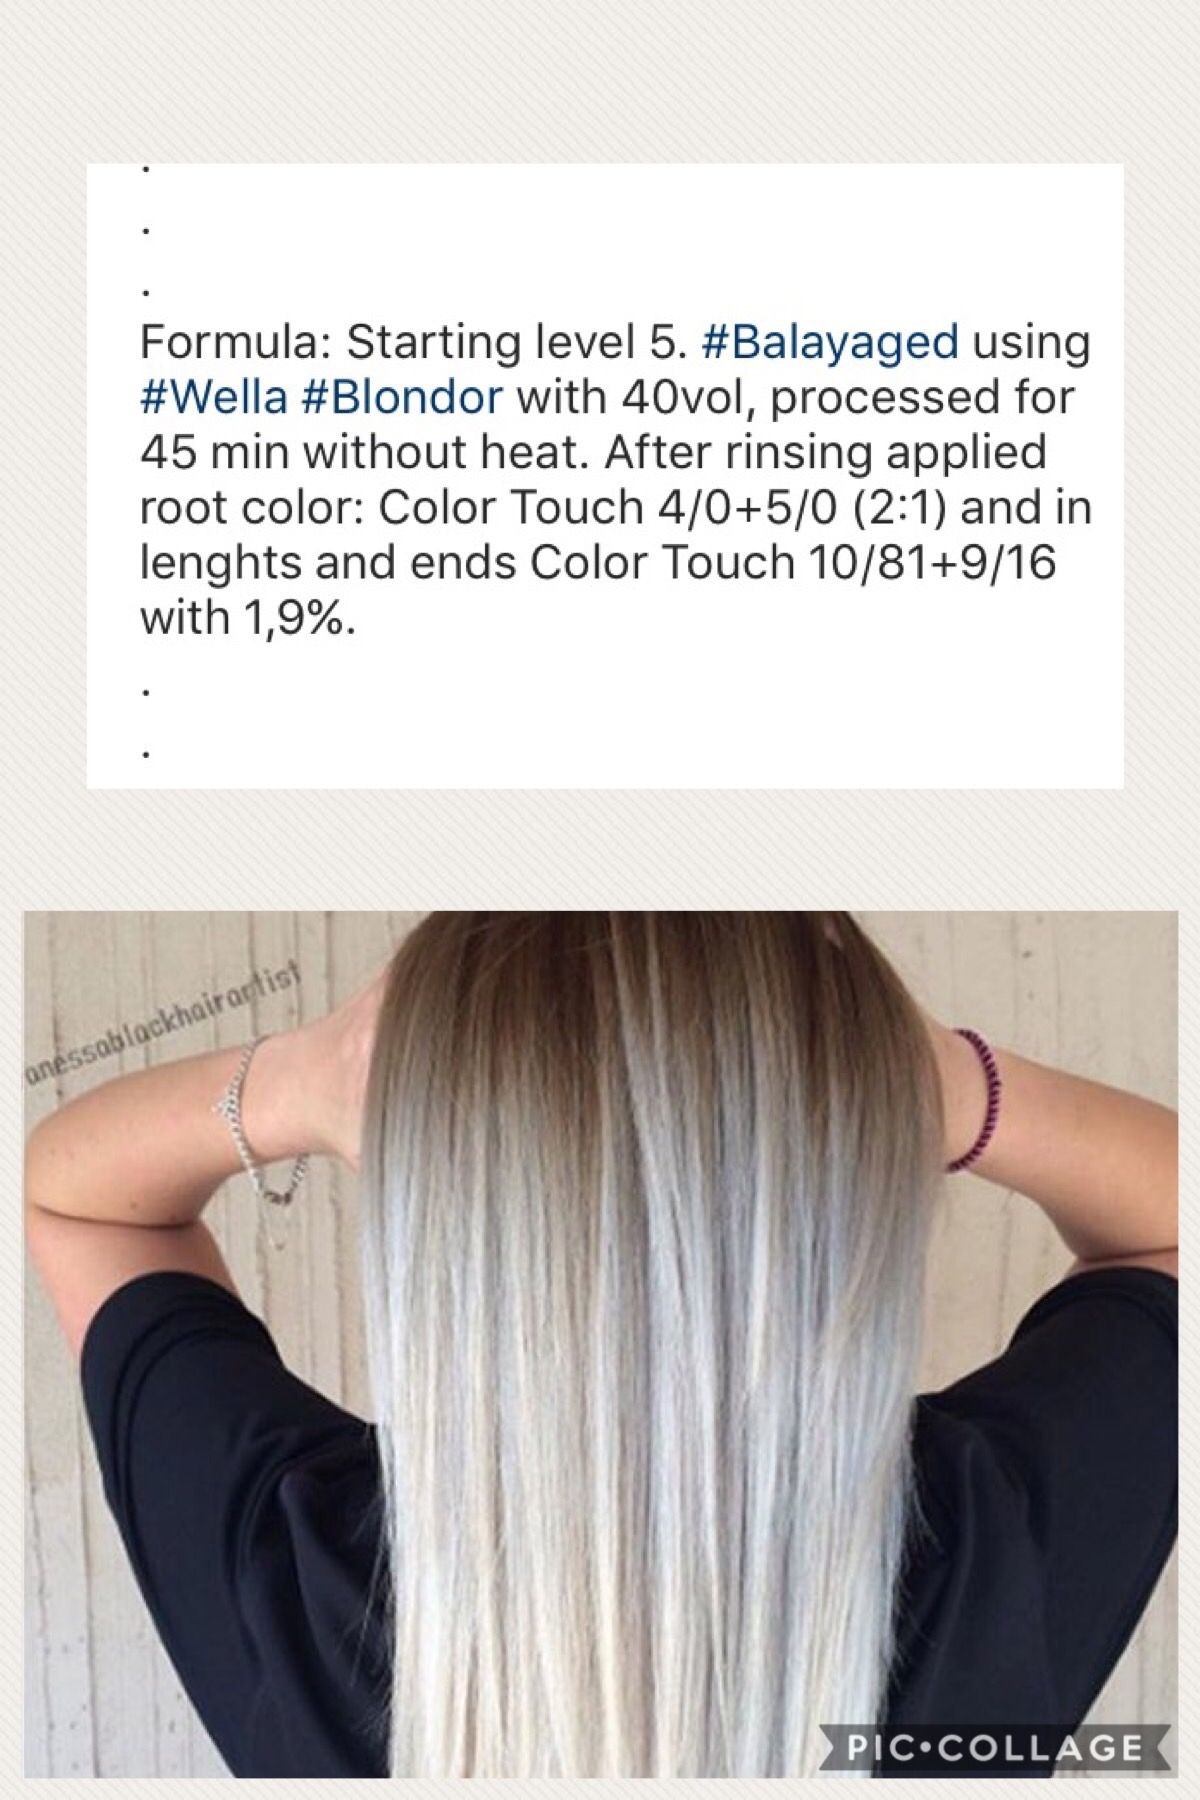 Pin By Cat Martis On Formula Wella Hair Color Hair Color Formulas Wella Hair